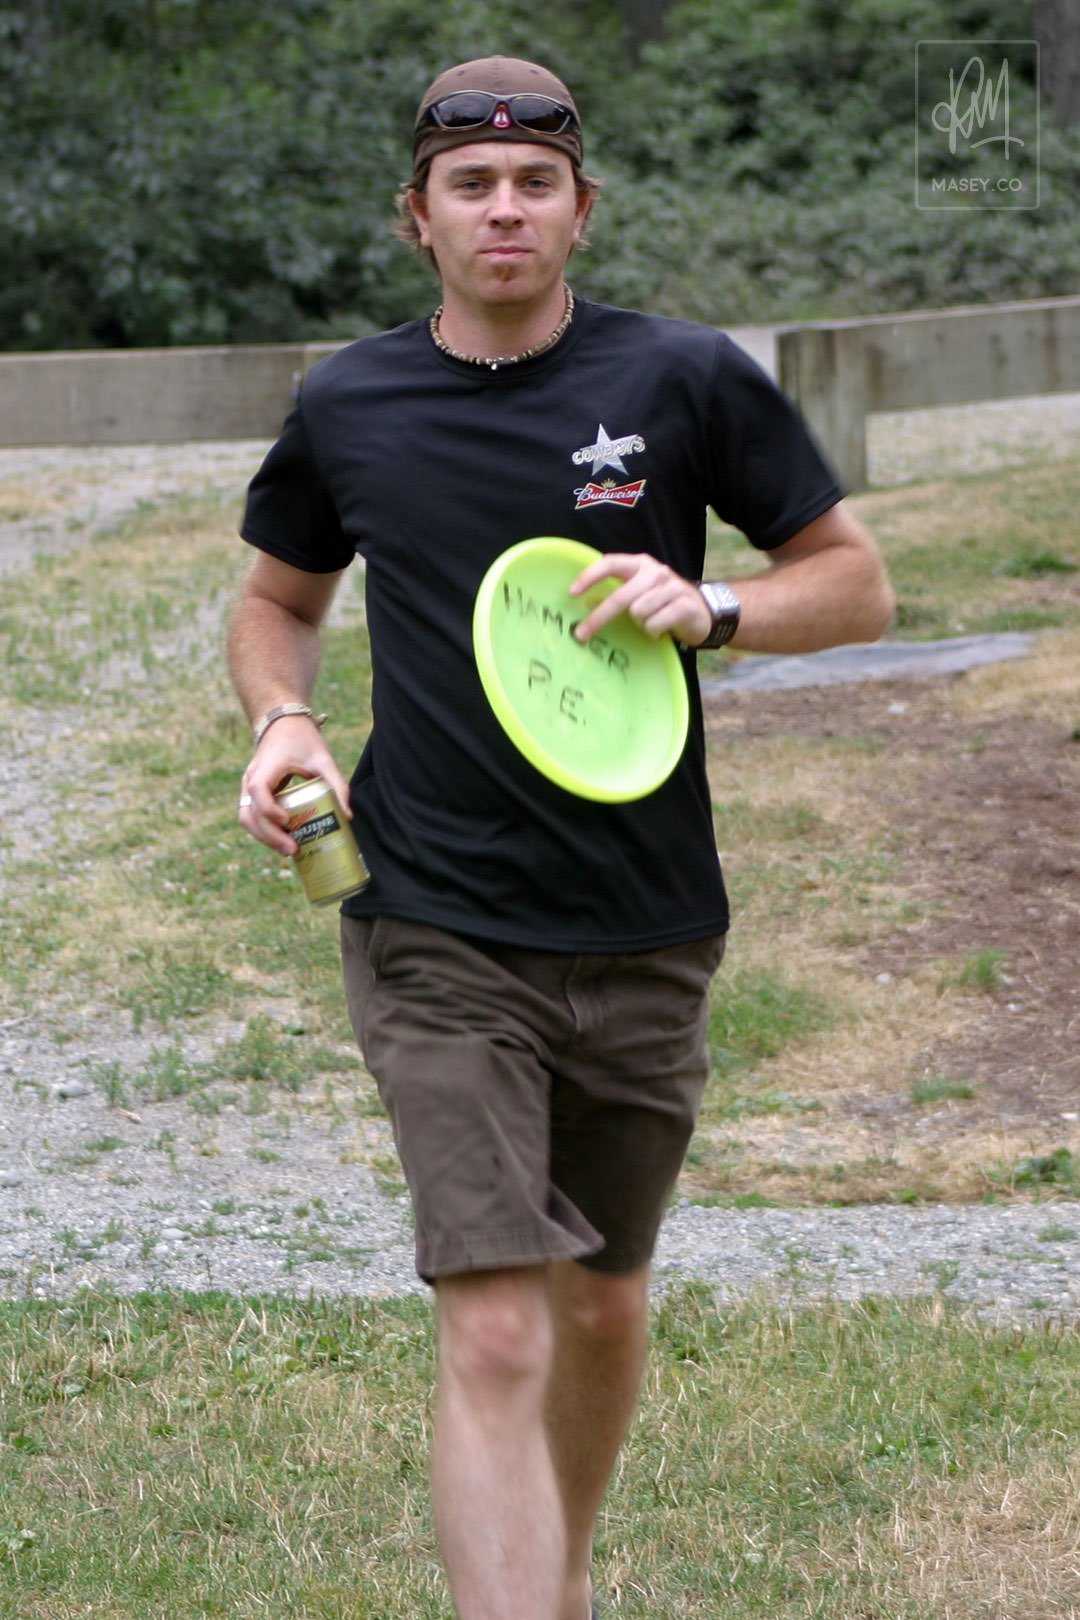 Unwinding with a wee game of Frisbee Golf